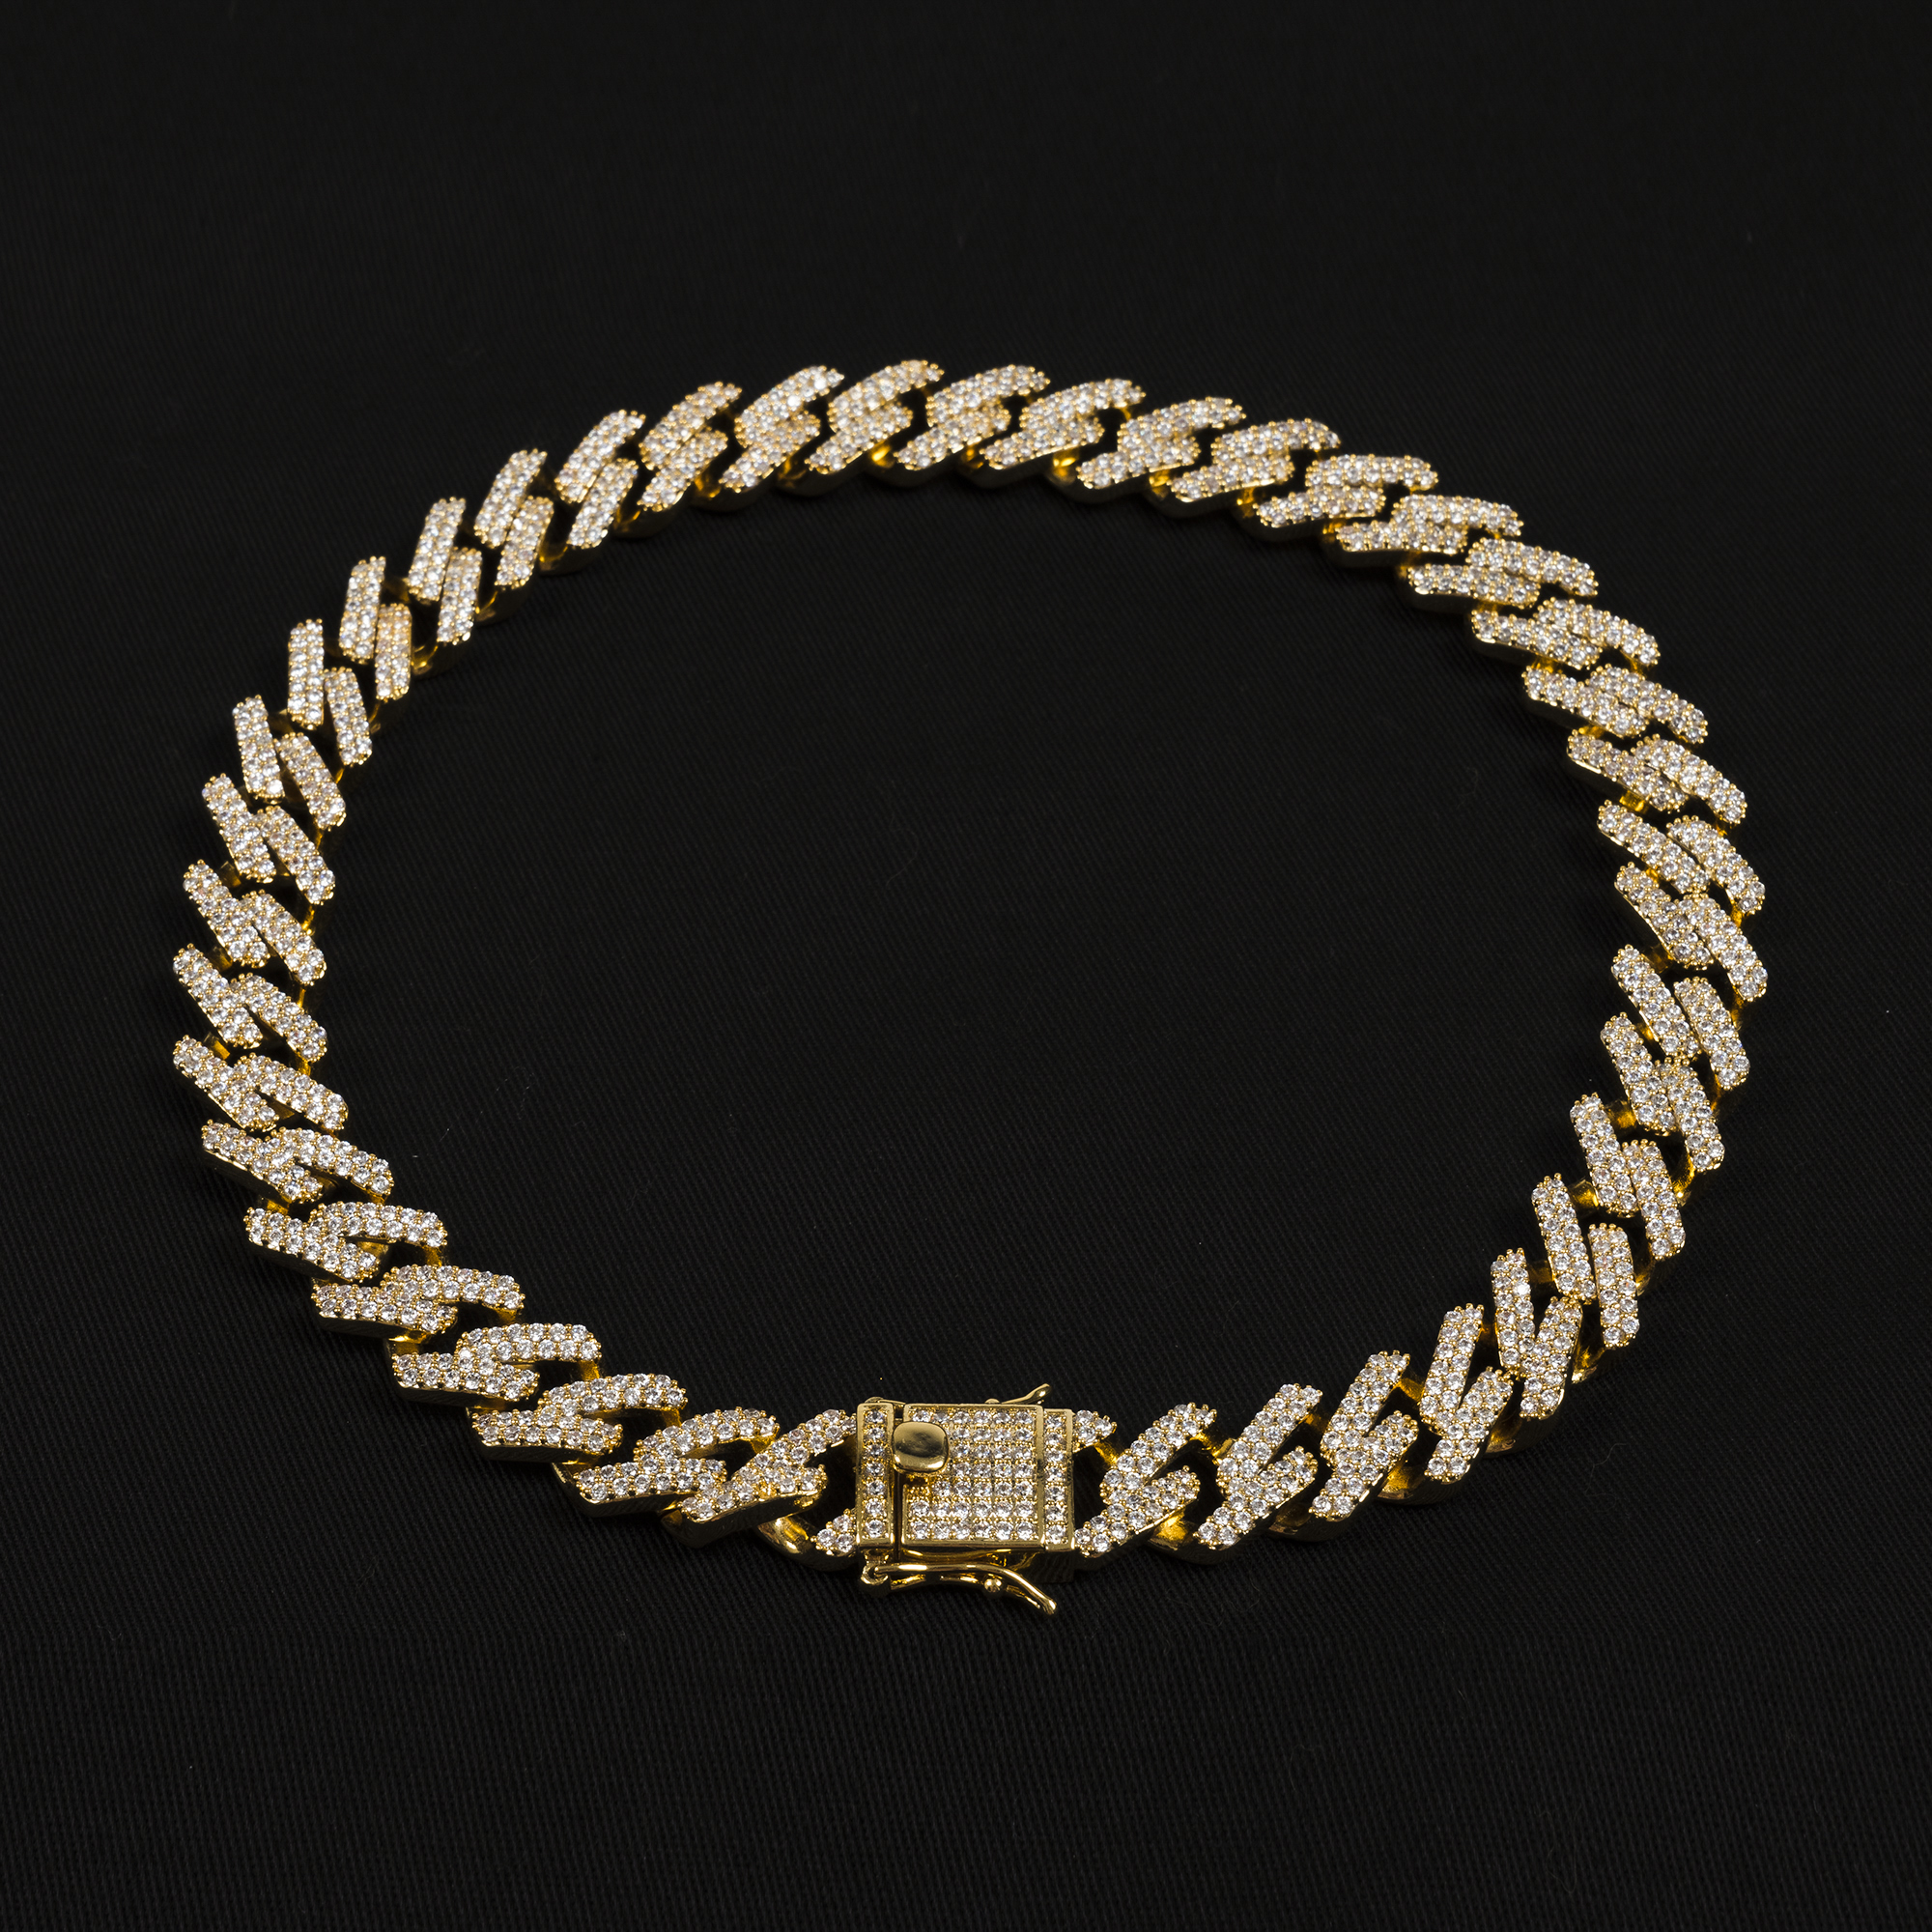 MIAMI CUBAN LINK NECKLACE IN GOLD